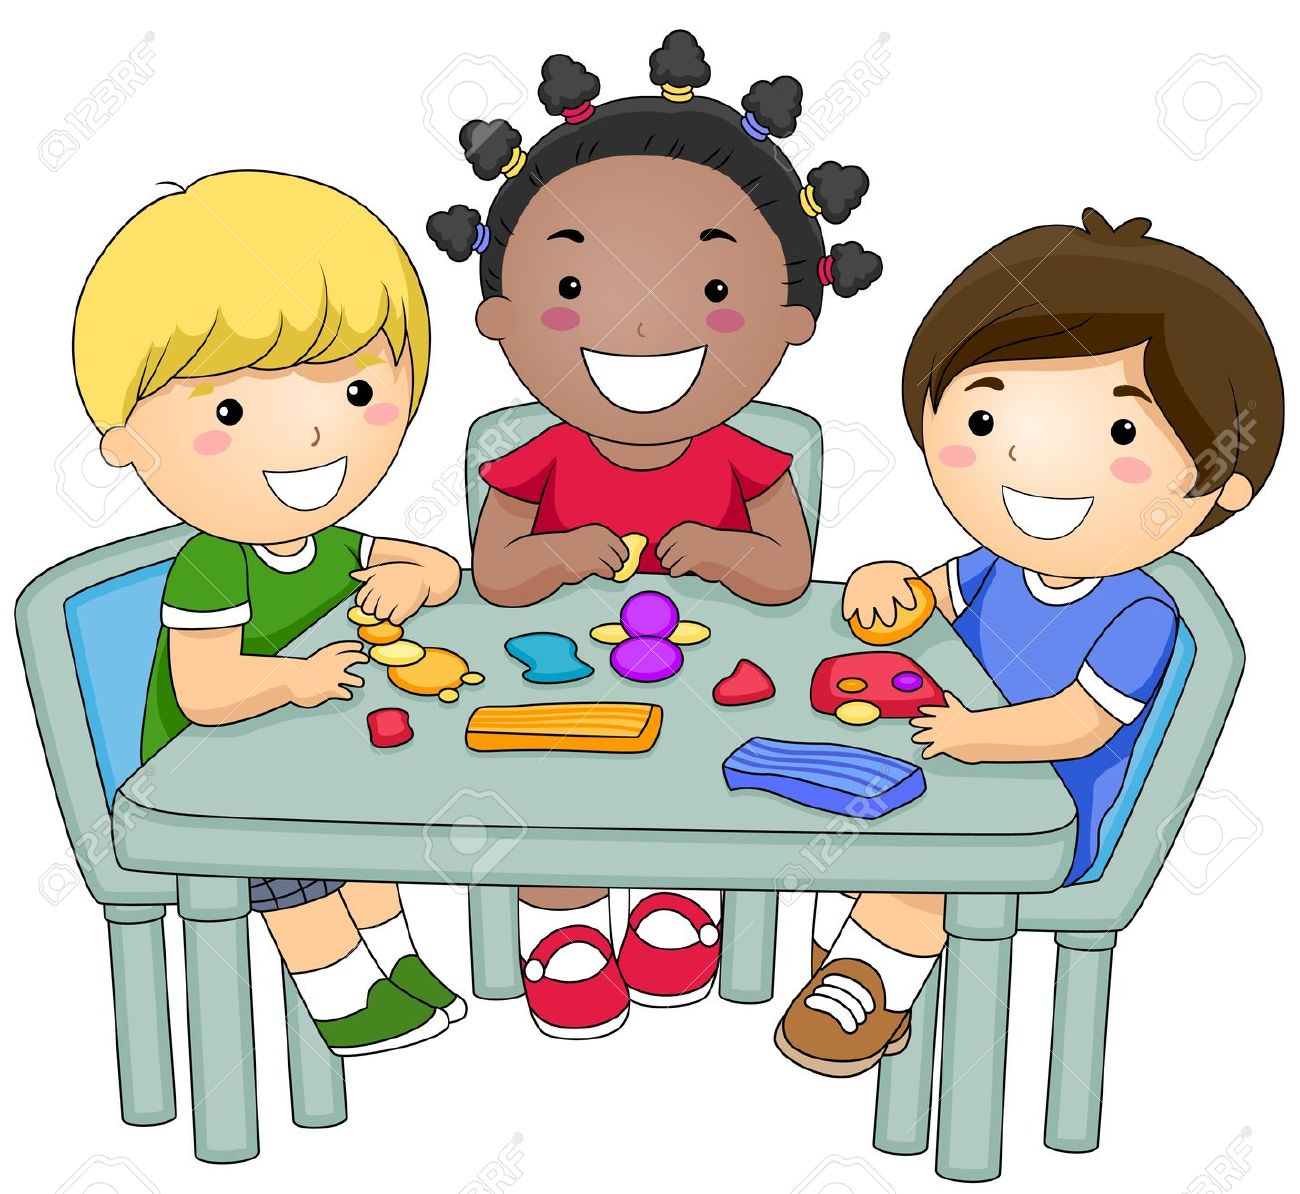 Preschool Activities Clipart.